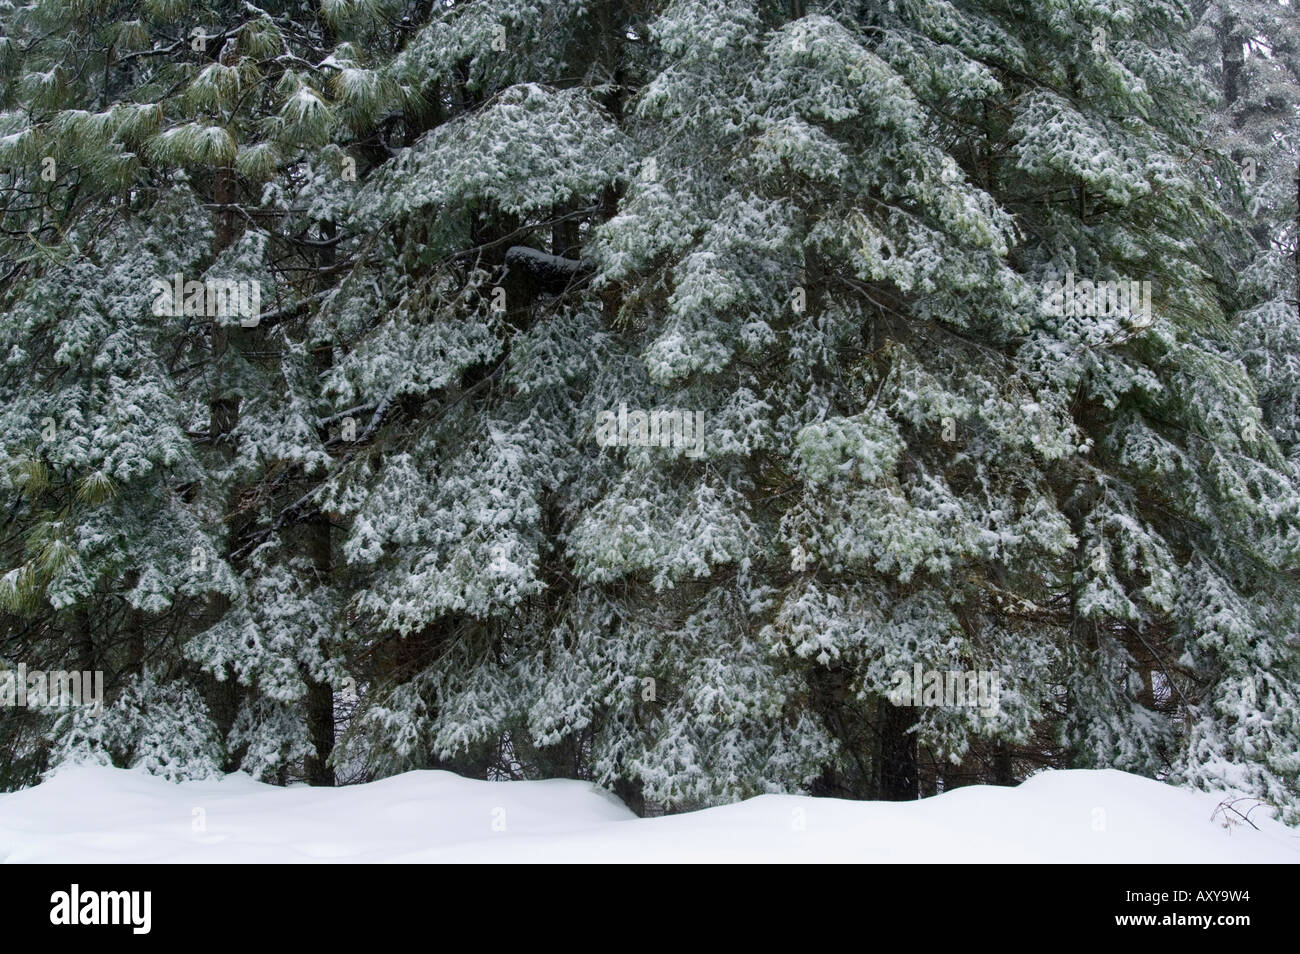 Fresh winter snow on branches of Red Fir trees at Crane Flat Yosemite National Park California - Stock Image